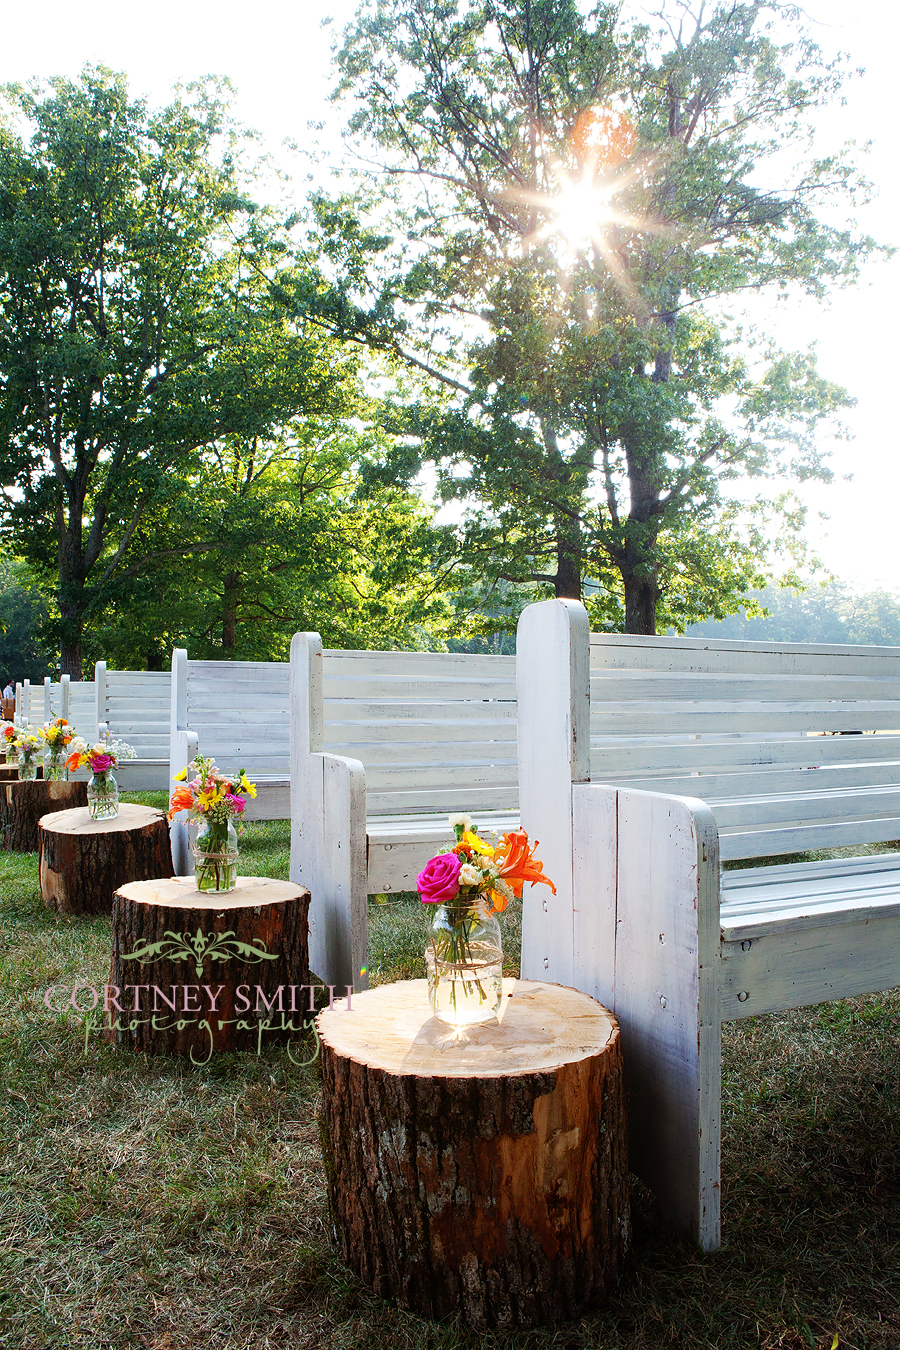 100 backyards for rent for weddings 13 times backyard